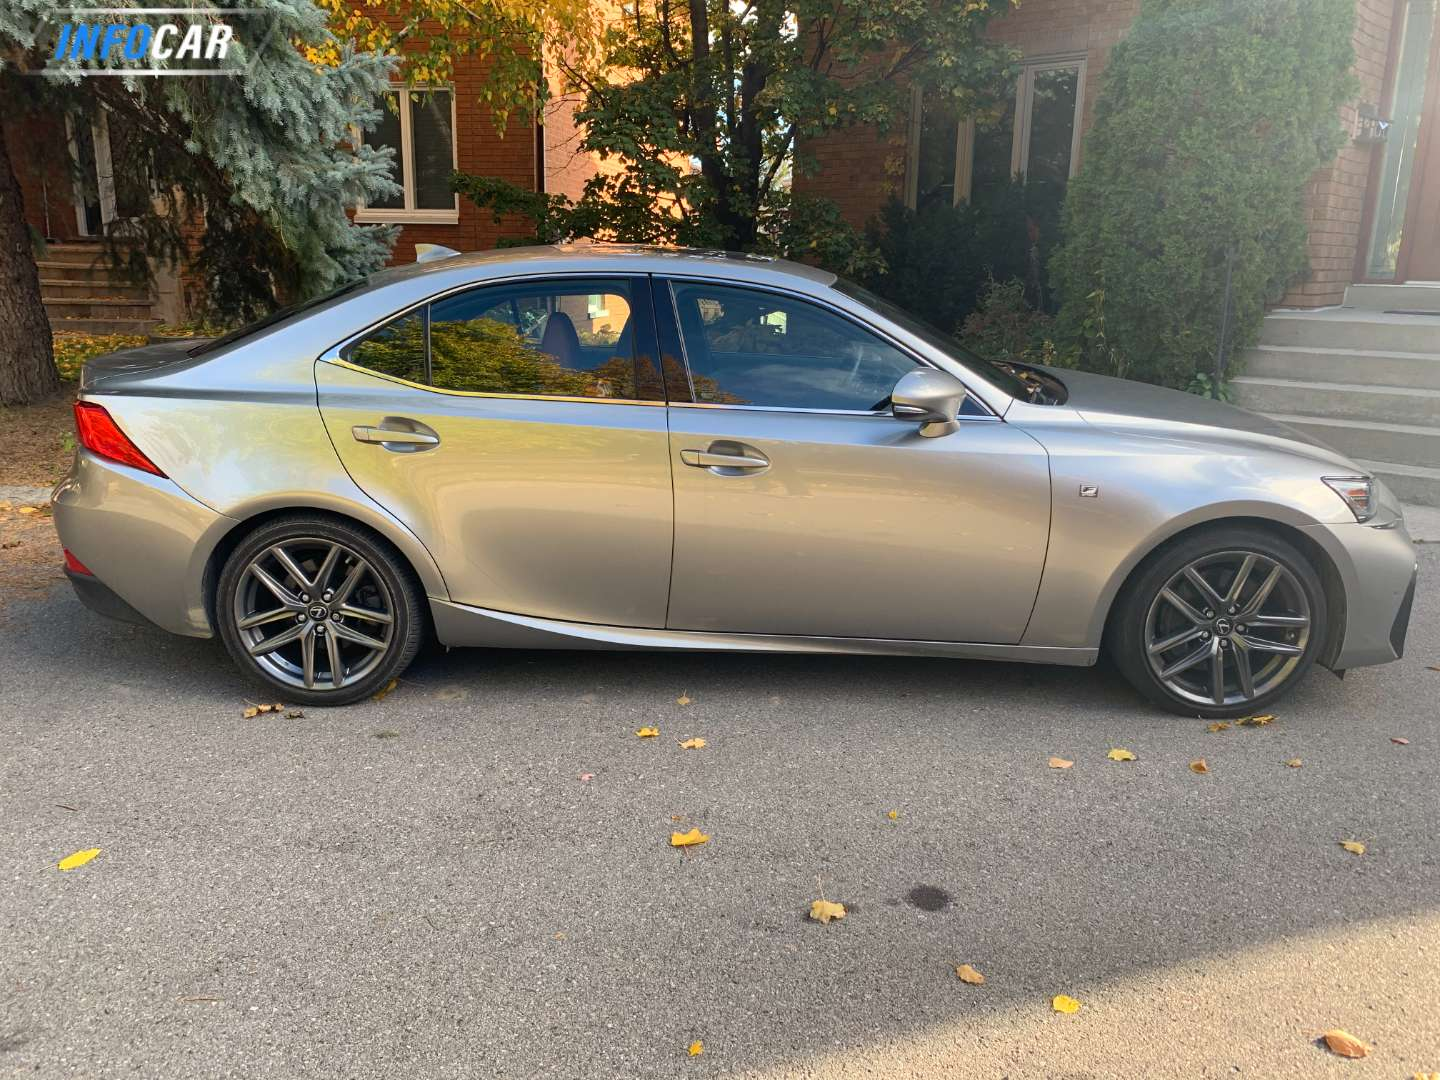 2018 Lexus IS 300 IS300 AWD F2 - INFOCAR - Toronto's Most Comprehensive New and Used Auto Trading Platform